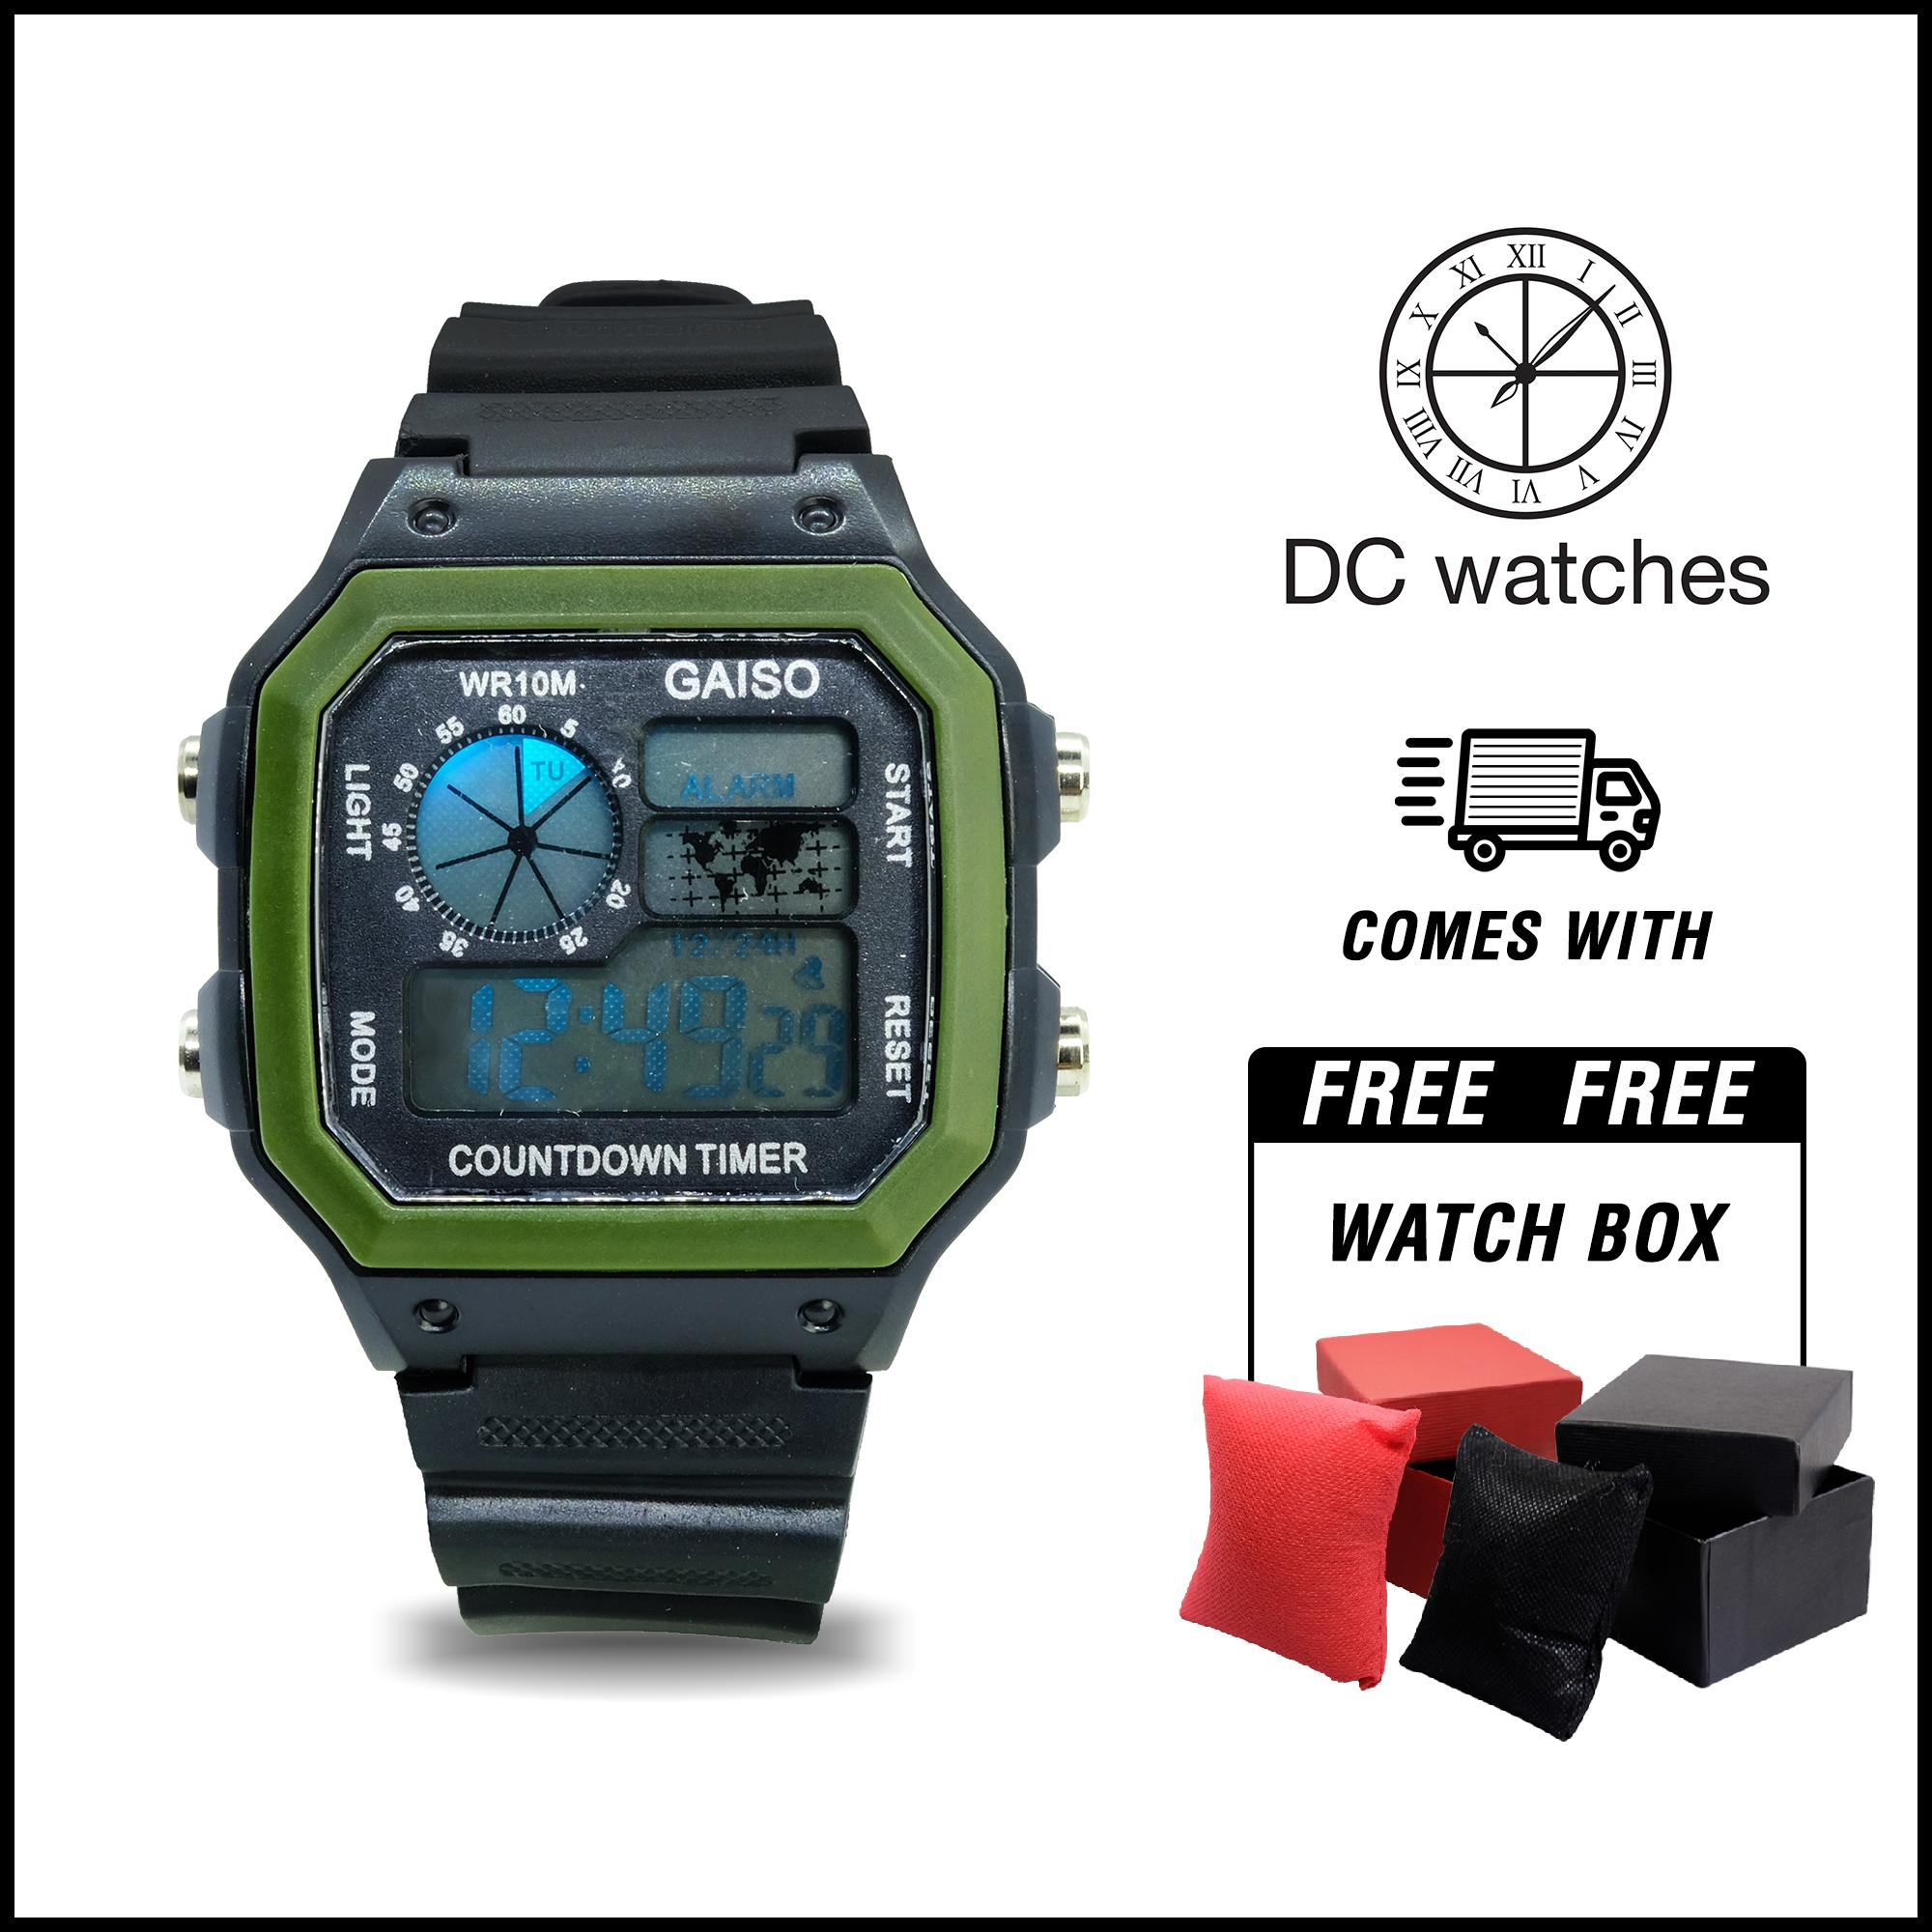 NEW Gaiso Collection DC Watches watch Sports Watches 30M water resist Back Light LED Digital Watch Chronograph Shock Wristwatches World Time  wristwatch flash sale WR10M 1 eyes 92A